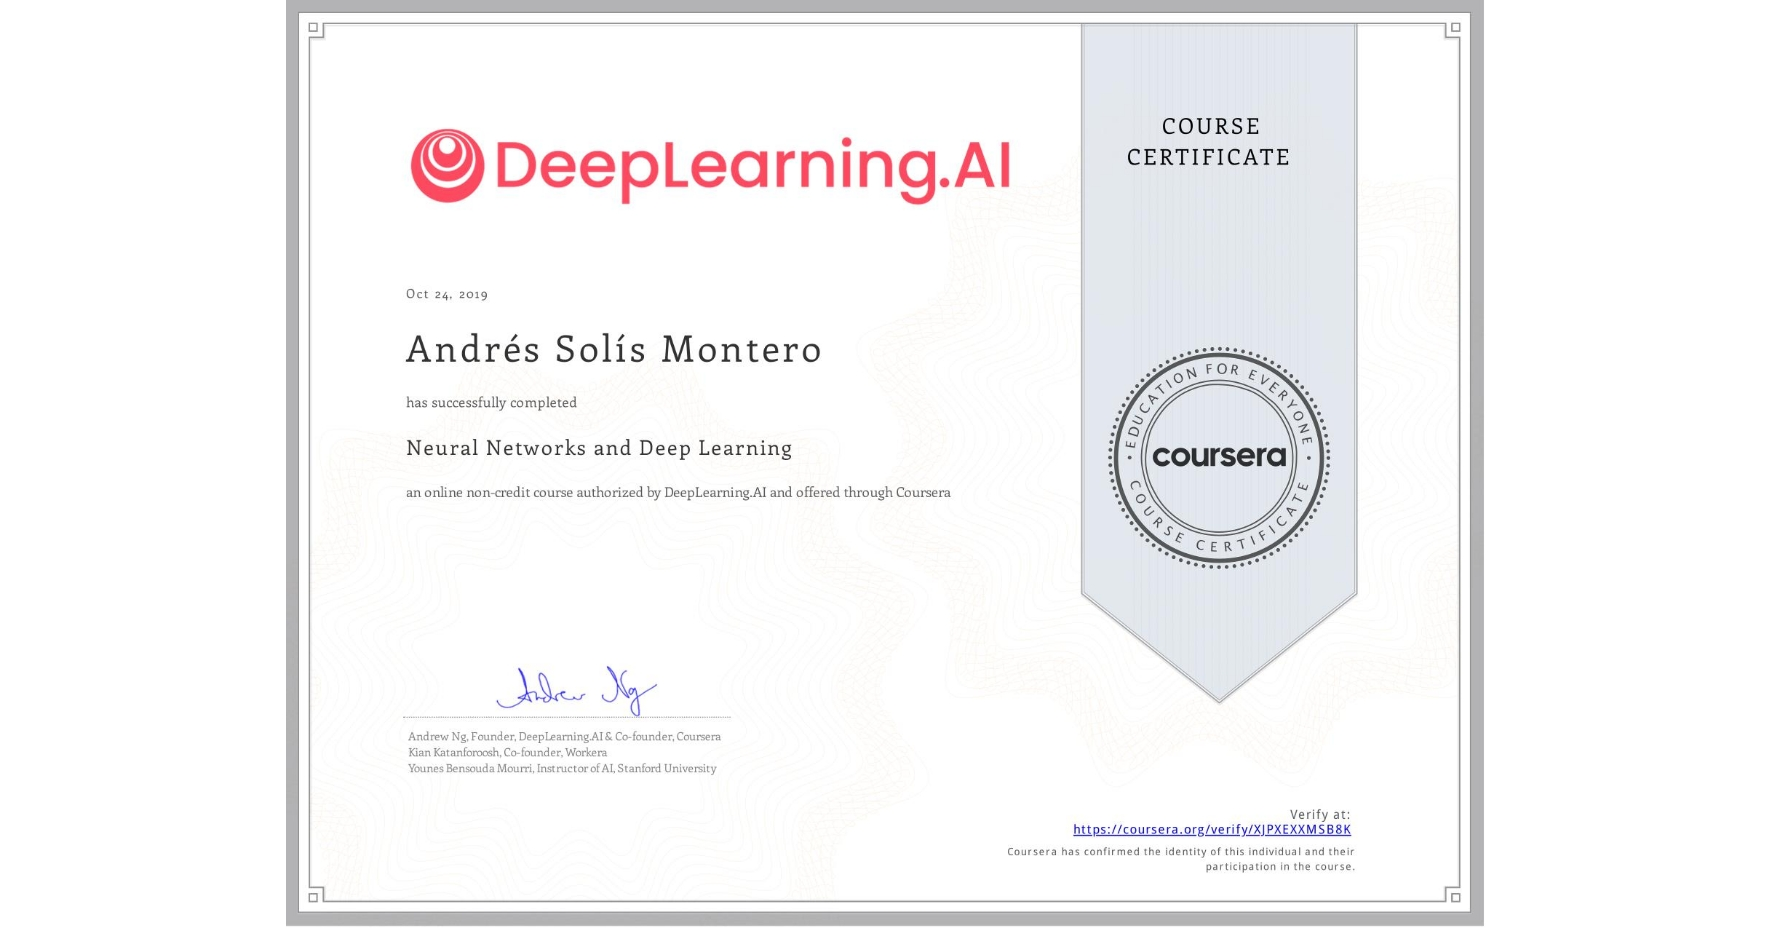 View certificate for Andrés Solís Montero, Neural Networks and Deep Learning, an online non-credit course authorized by DeepLearning.AI and offered through Coursera